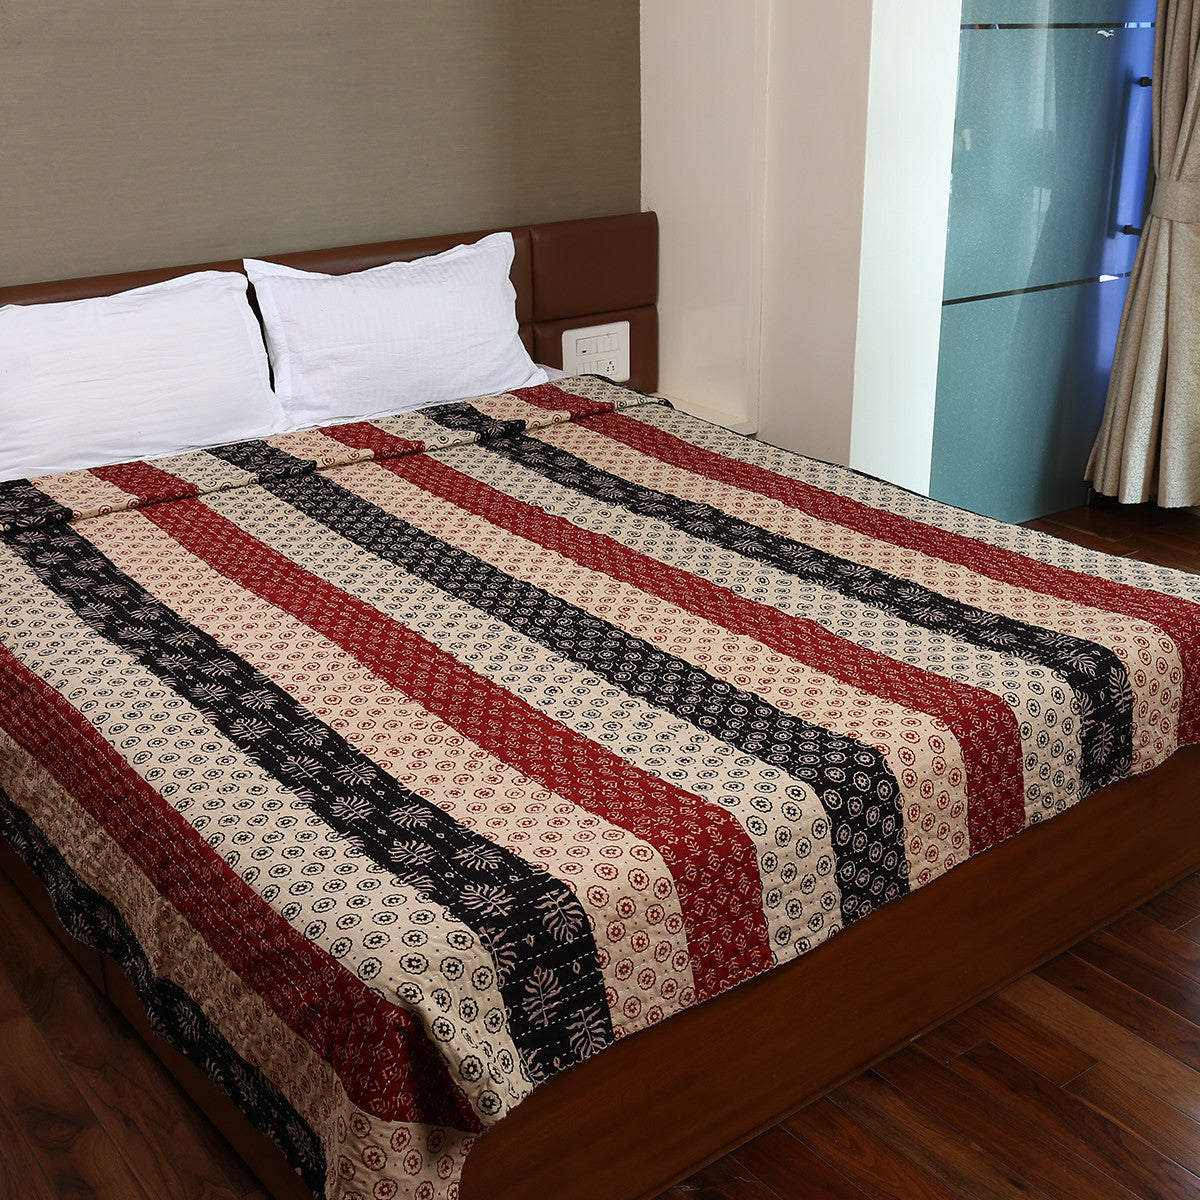 Dual Side Ajrakh Patchwork Hand Block Printed Cotton Quilt with Kantha Work 2